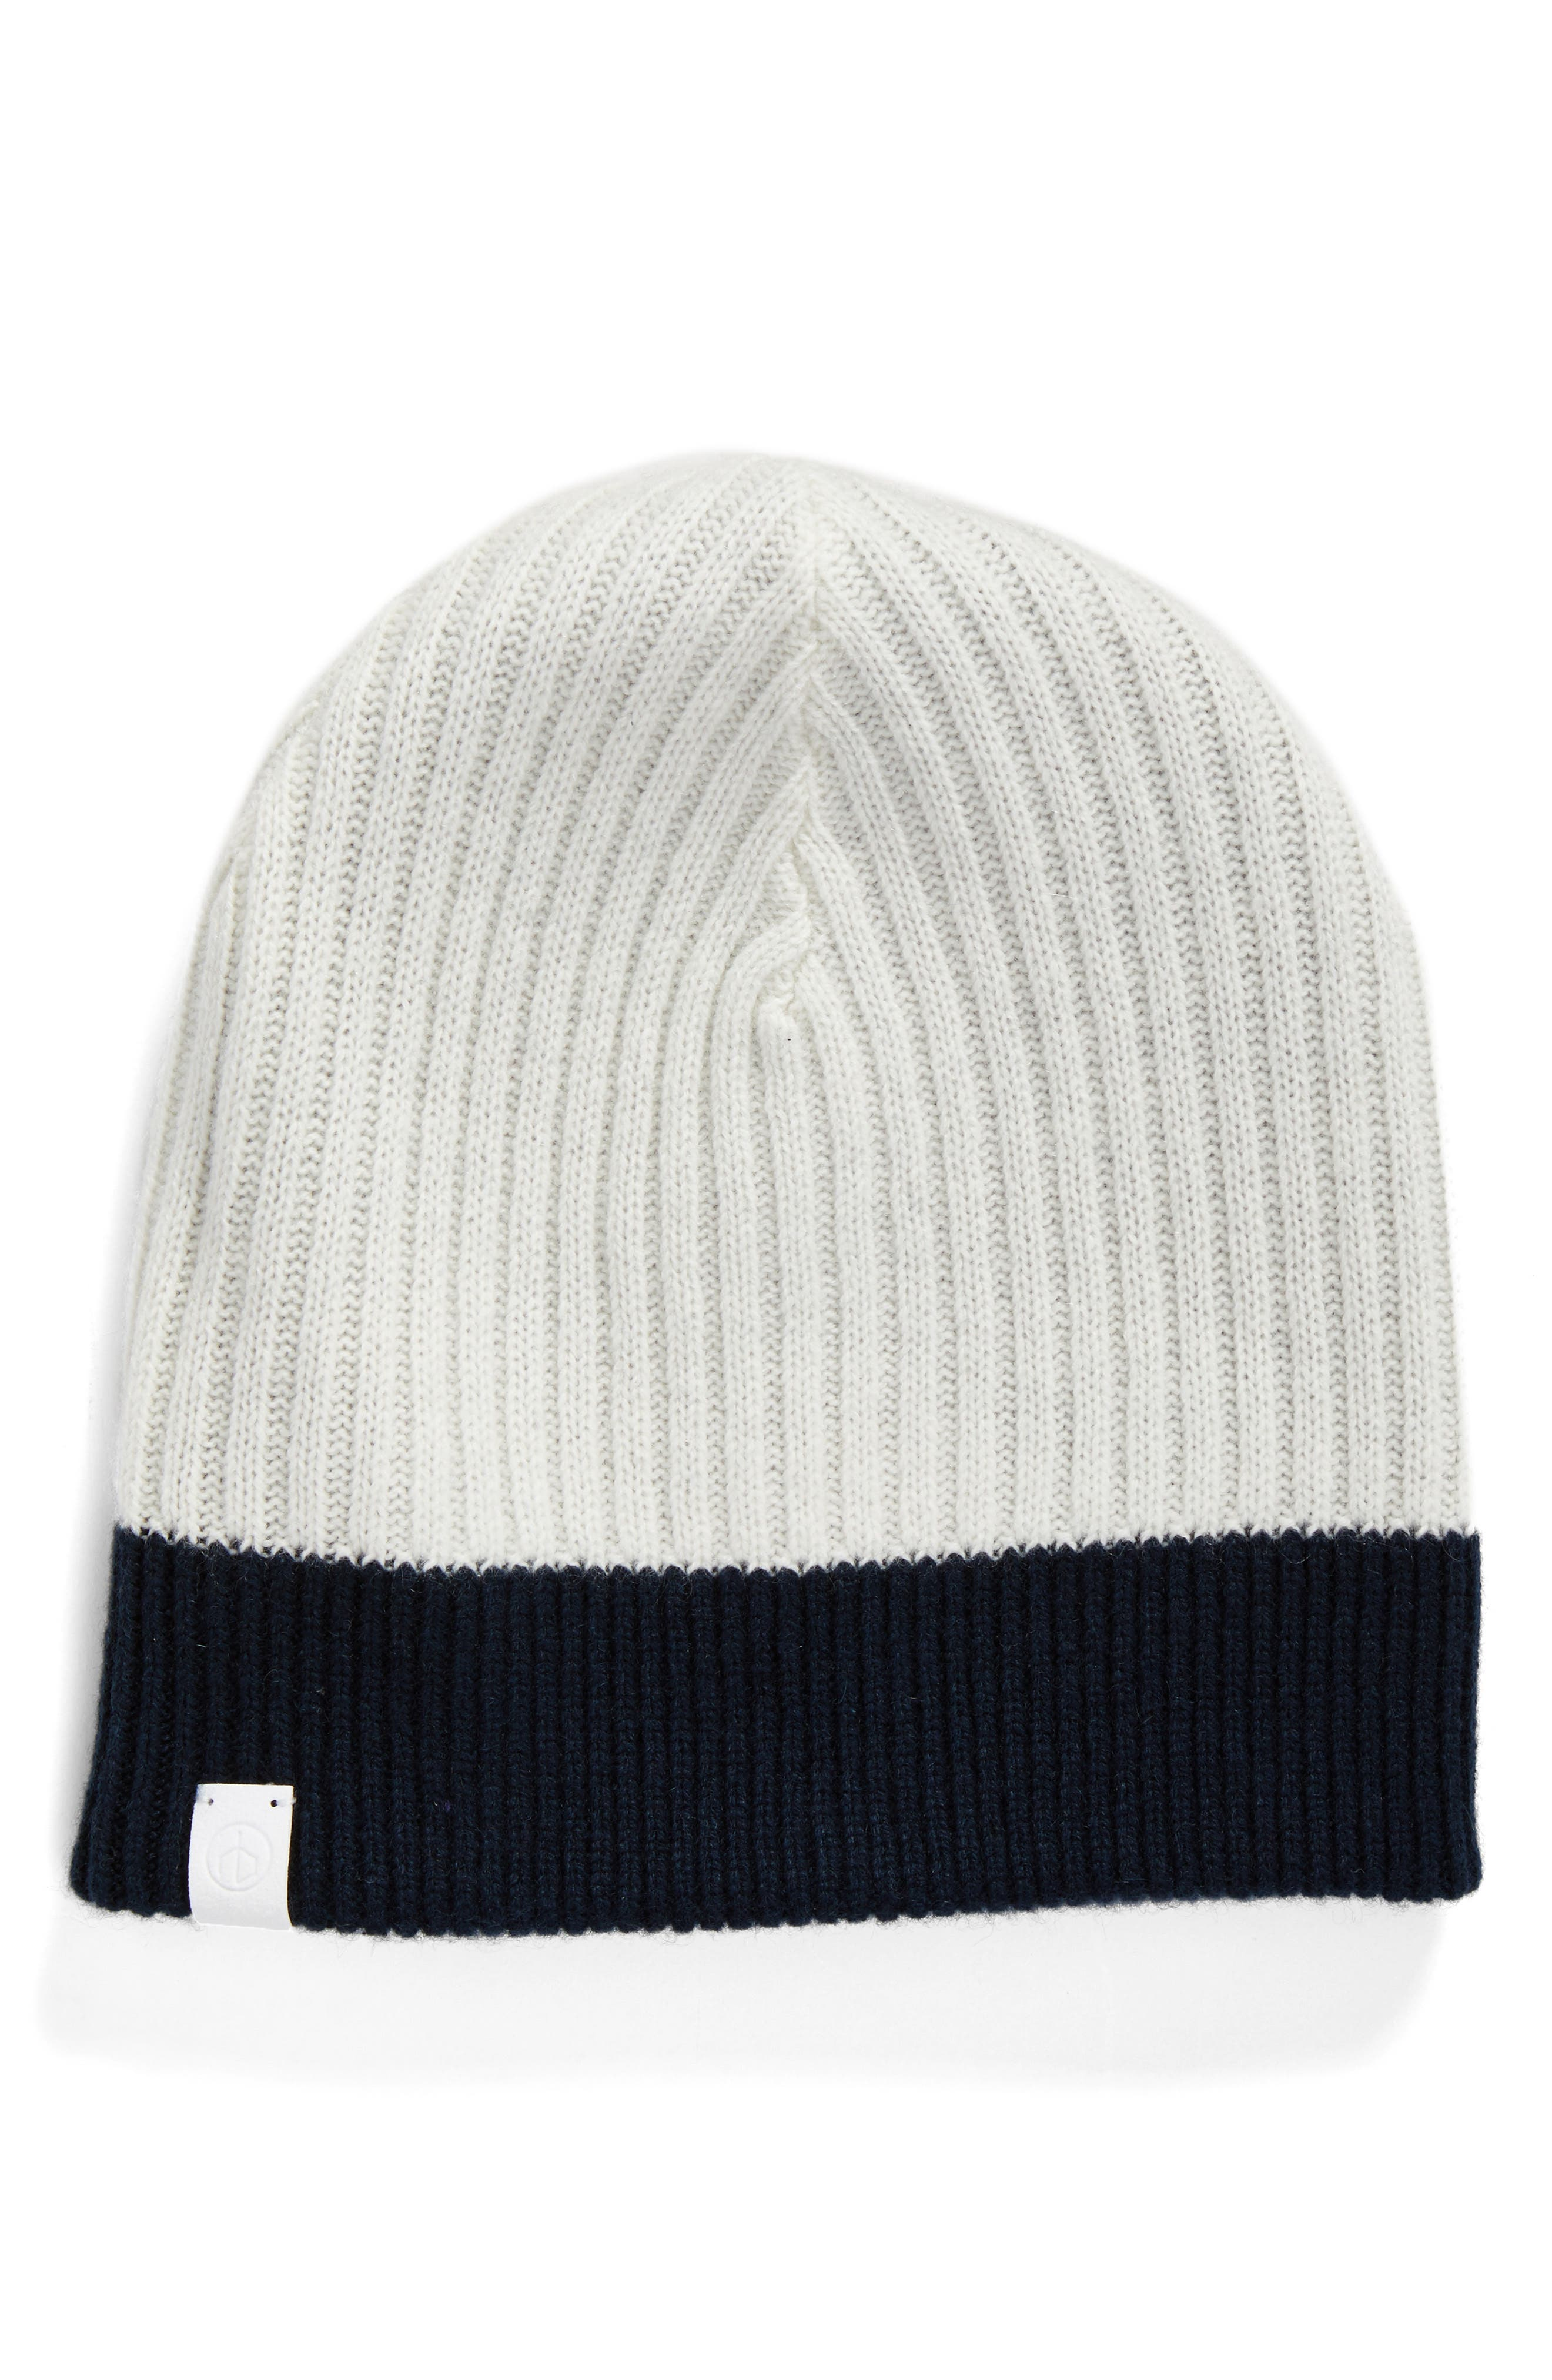 Ace Reversible Cashmere Beanie,                             Alternate thumbnail 2, color,                             Navy